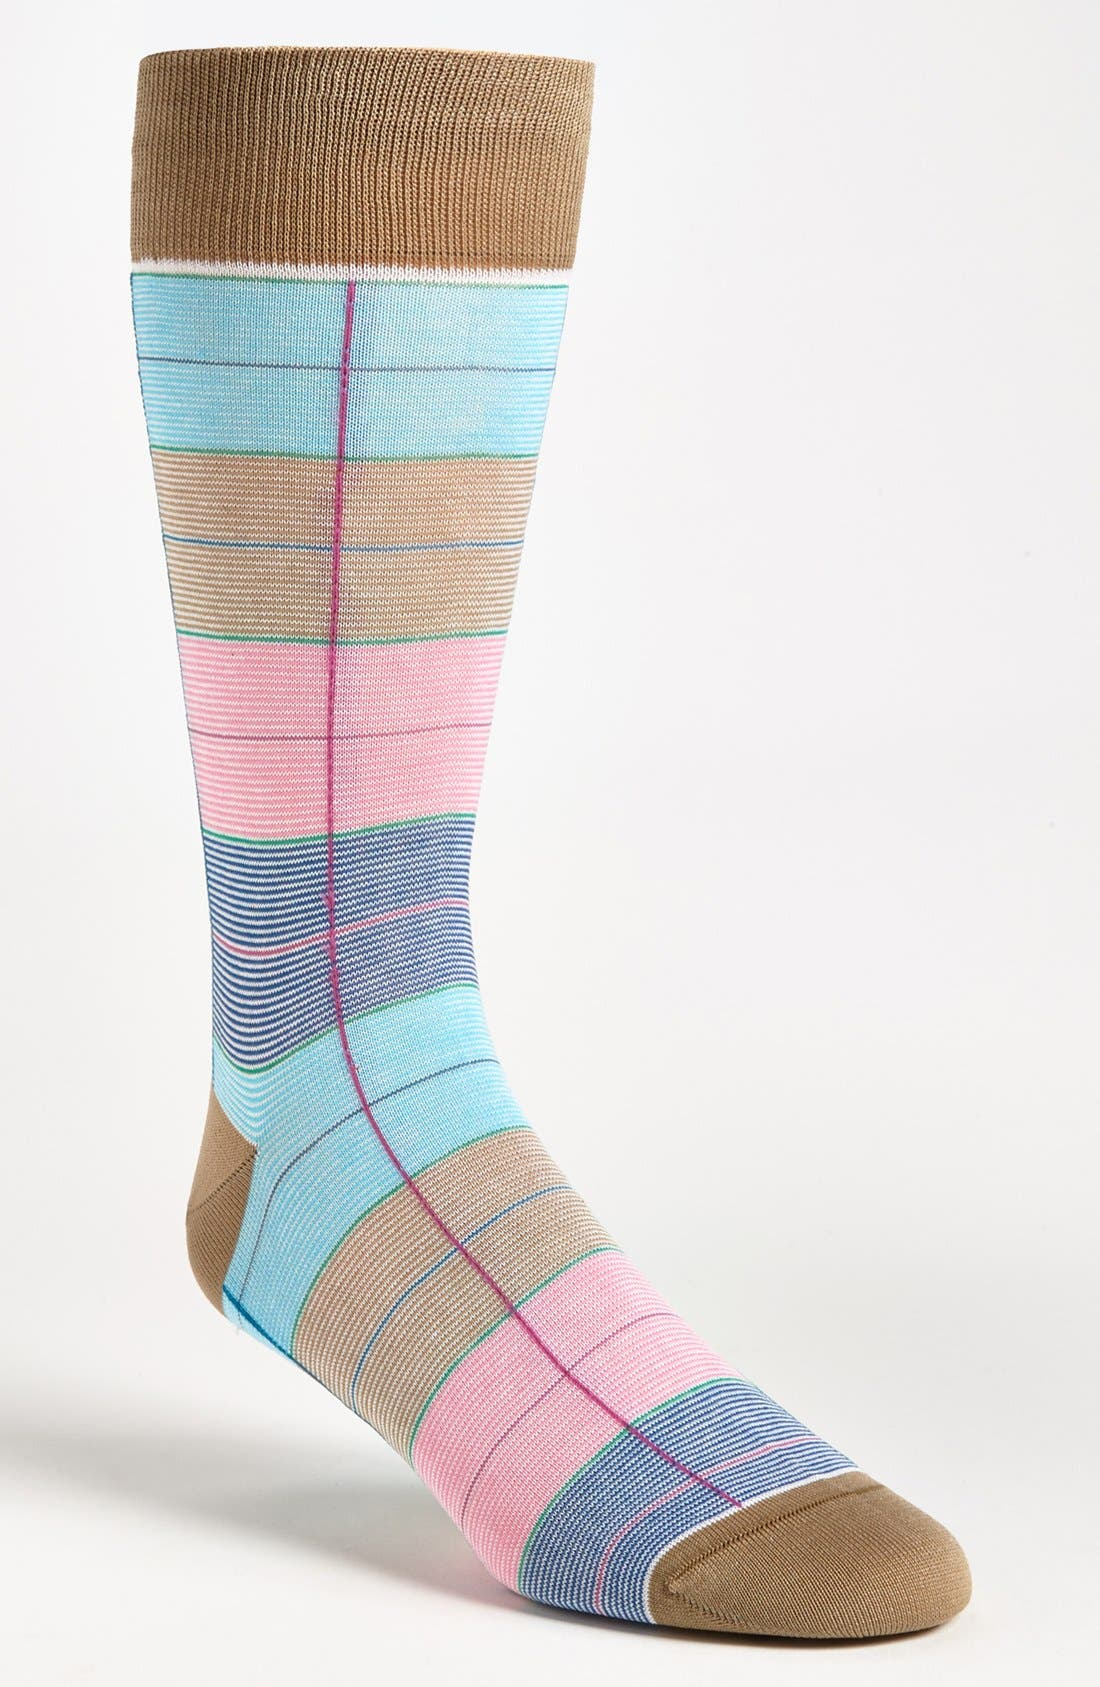 Alternate Image 1 Selected - Bugatchi Uomo Check Socks